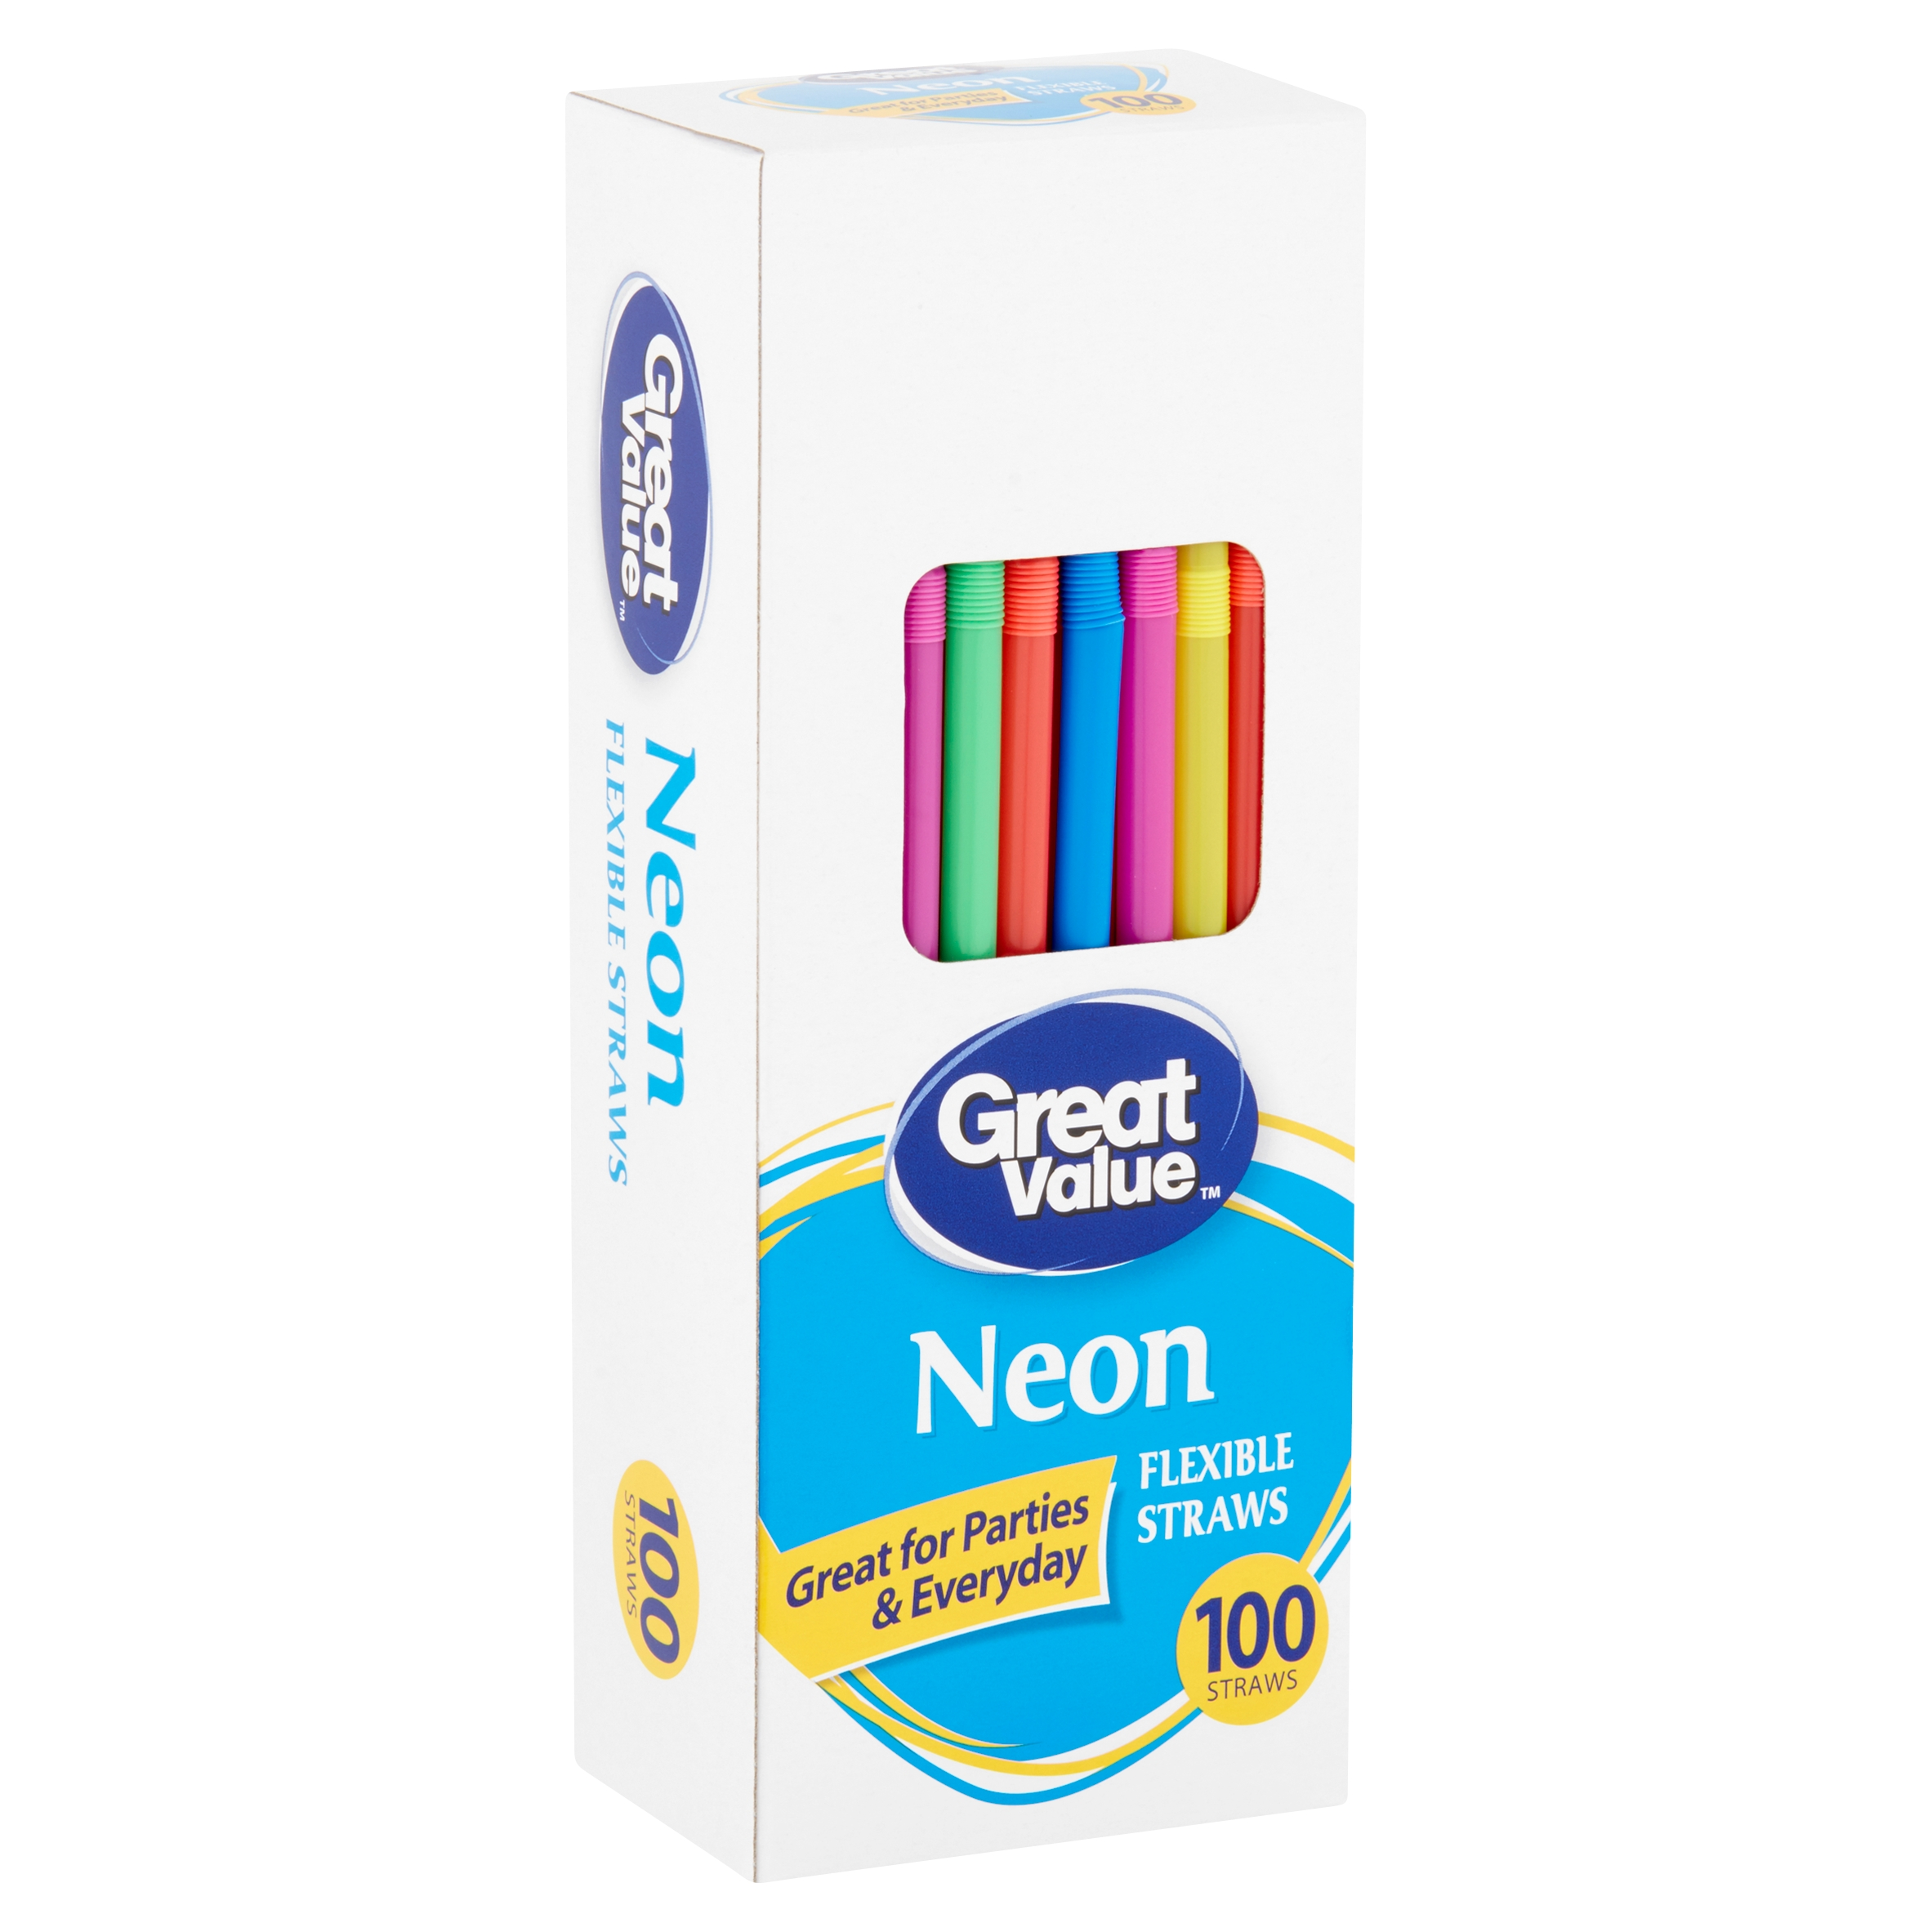 (2 Pack) Great Value Neon Flexible Straws, 100 count